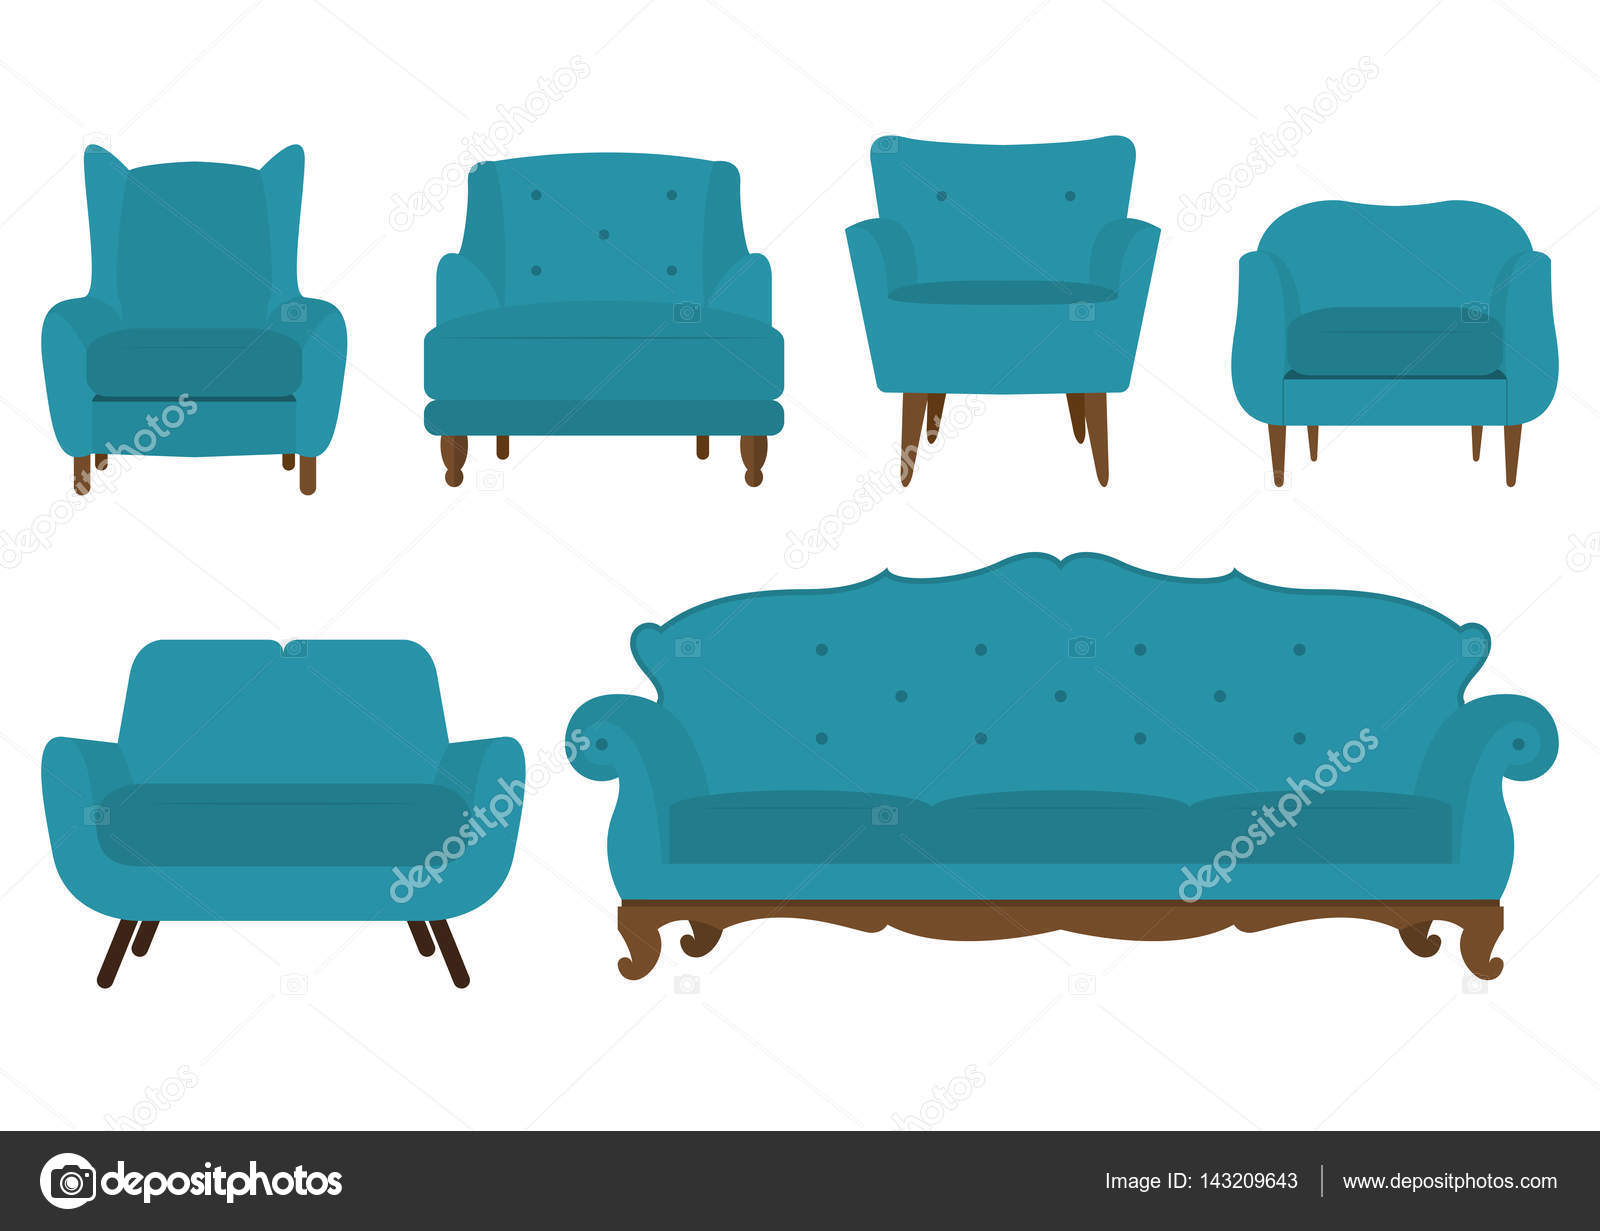 Set Of Chair Sofa And Armchair In Flat Design Vector Image By Tond Ruangwit Gmail Com Vector Stock 143209643